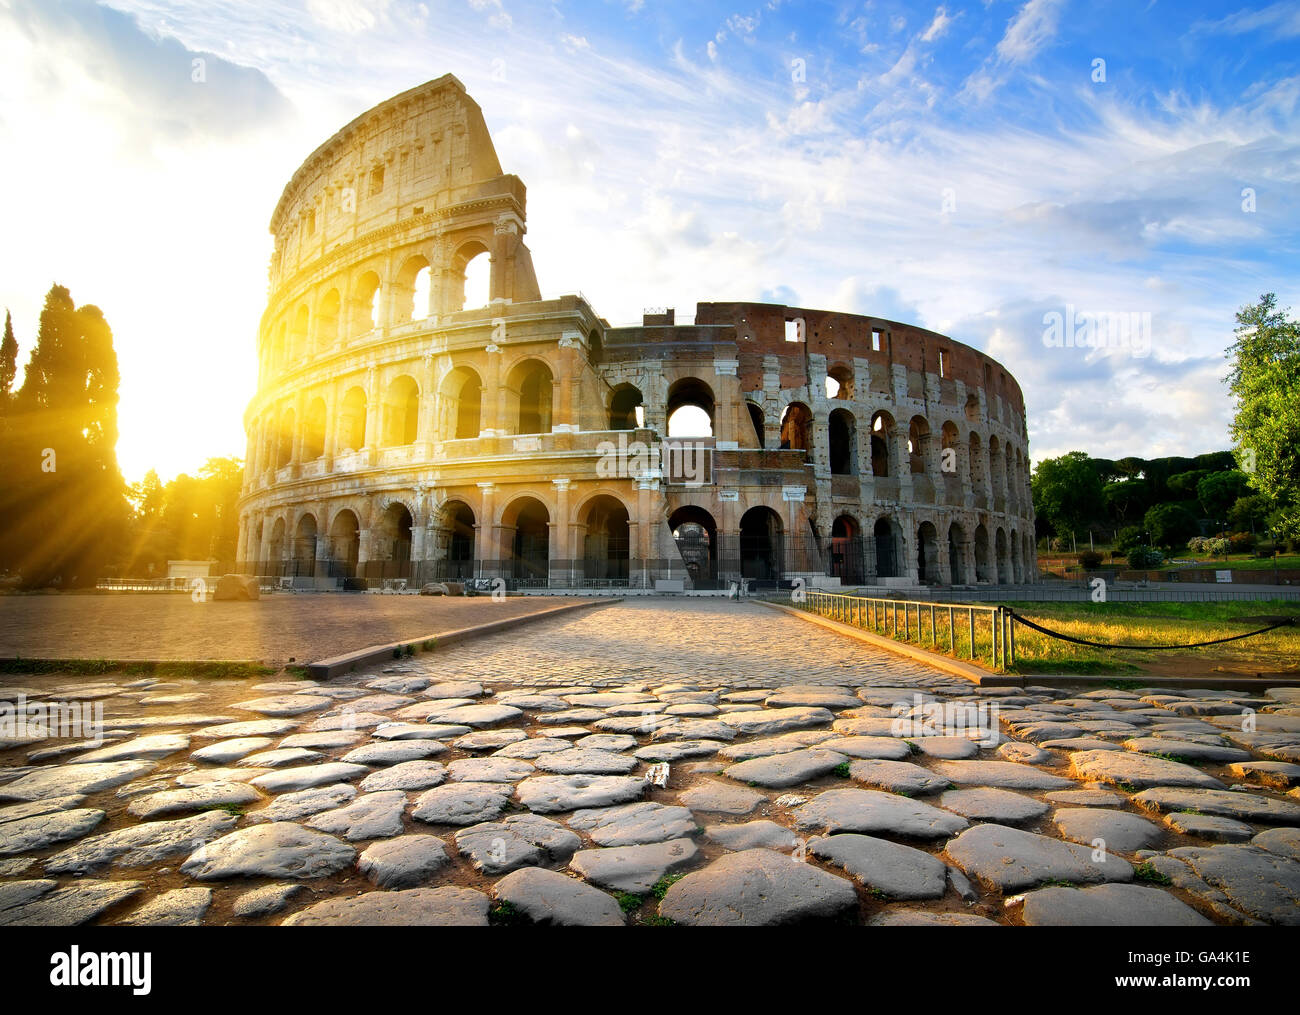 Colosseum in Rome at dawn, Italy - Stock Image